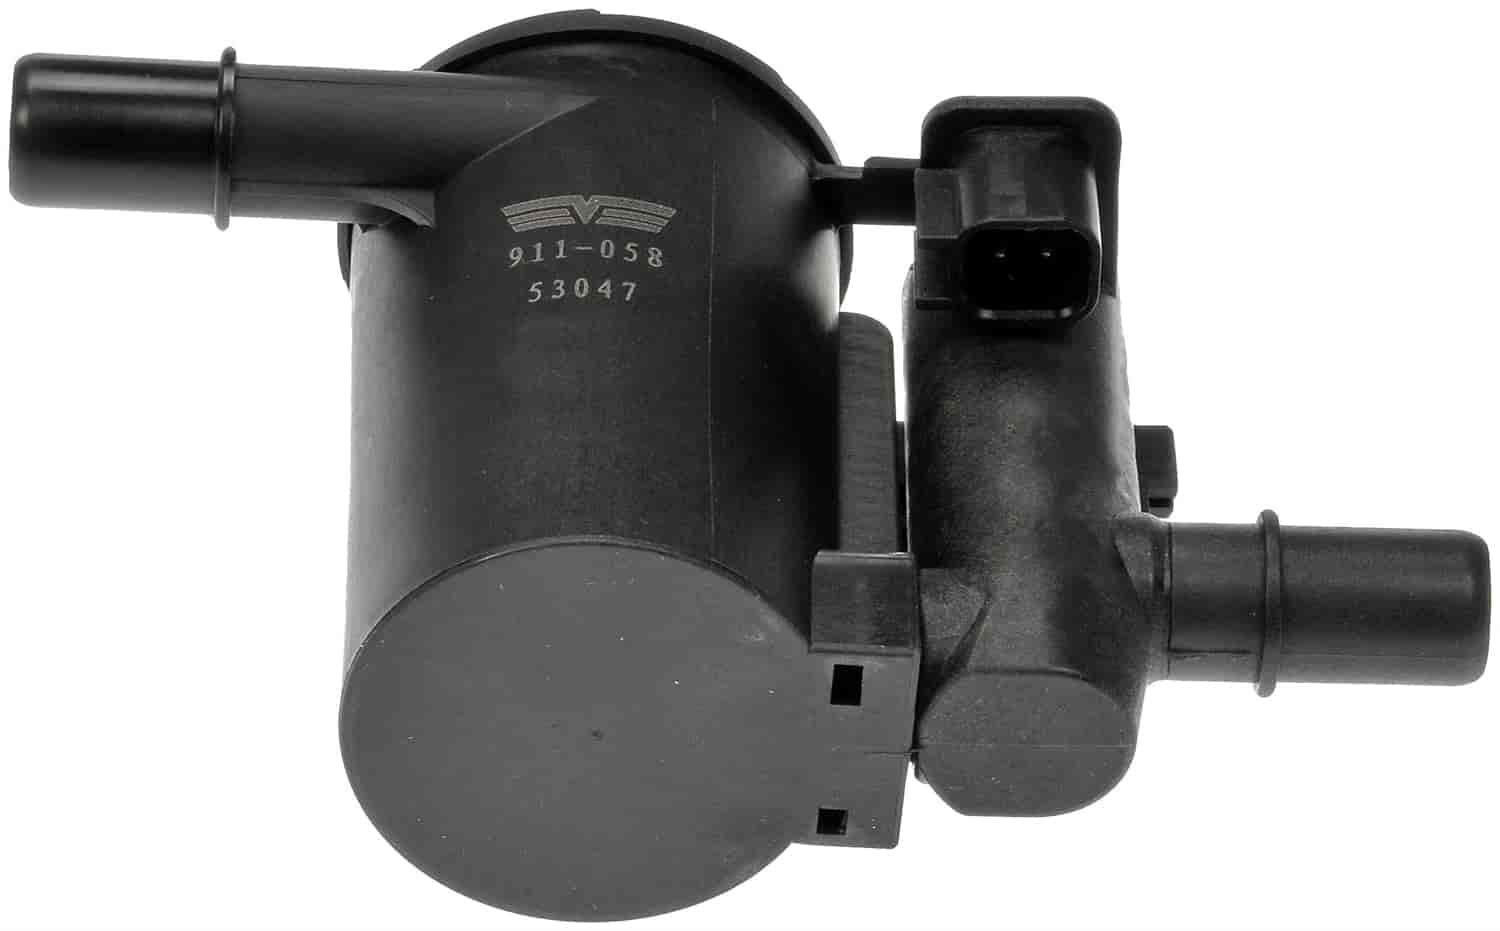 Dorman Products 911-058